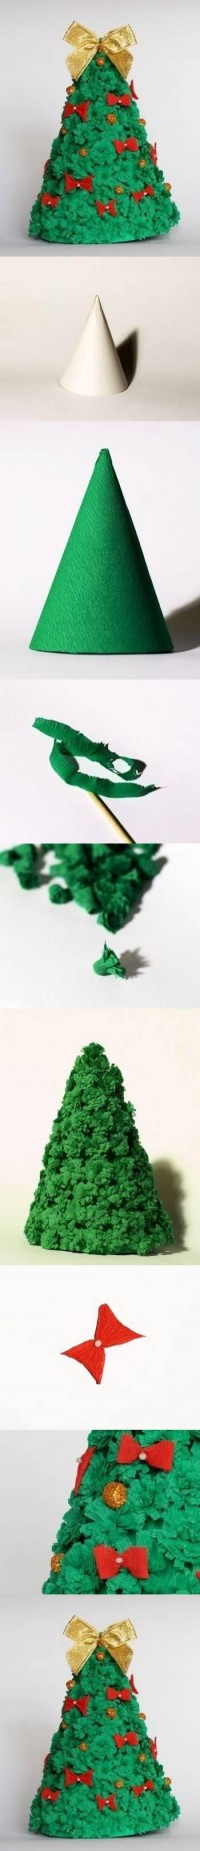 DIY Corrugated Crepe Paper Christmas Tree DIY Projects | UsefulDIY.com